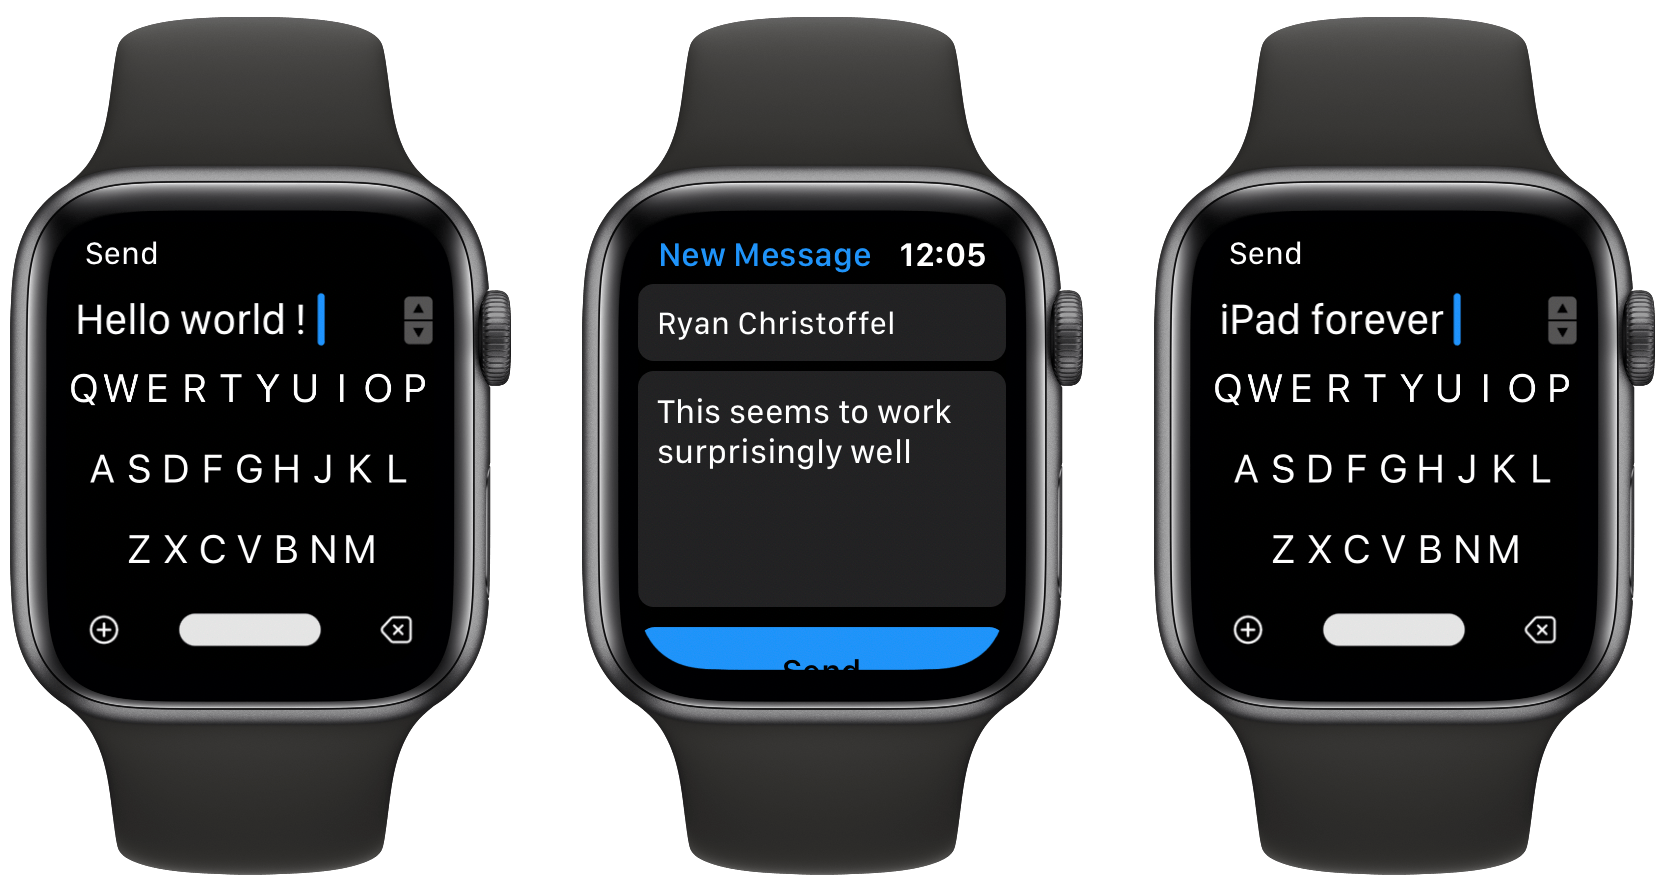 FlickType Keyboard Review: Real Typing on an Apple Watch Display